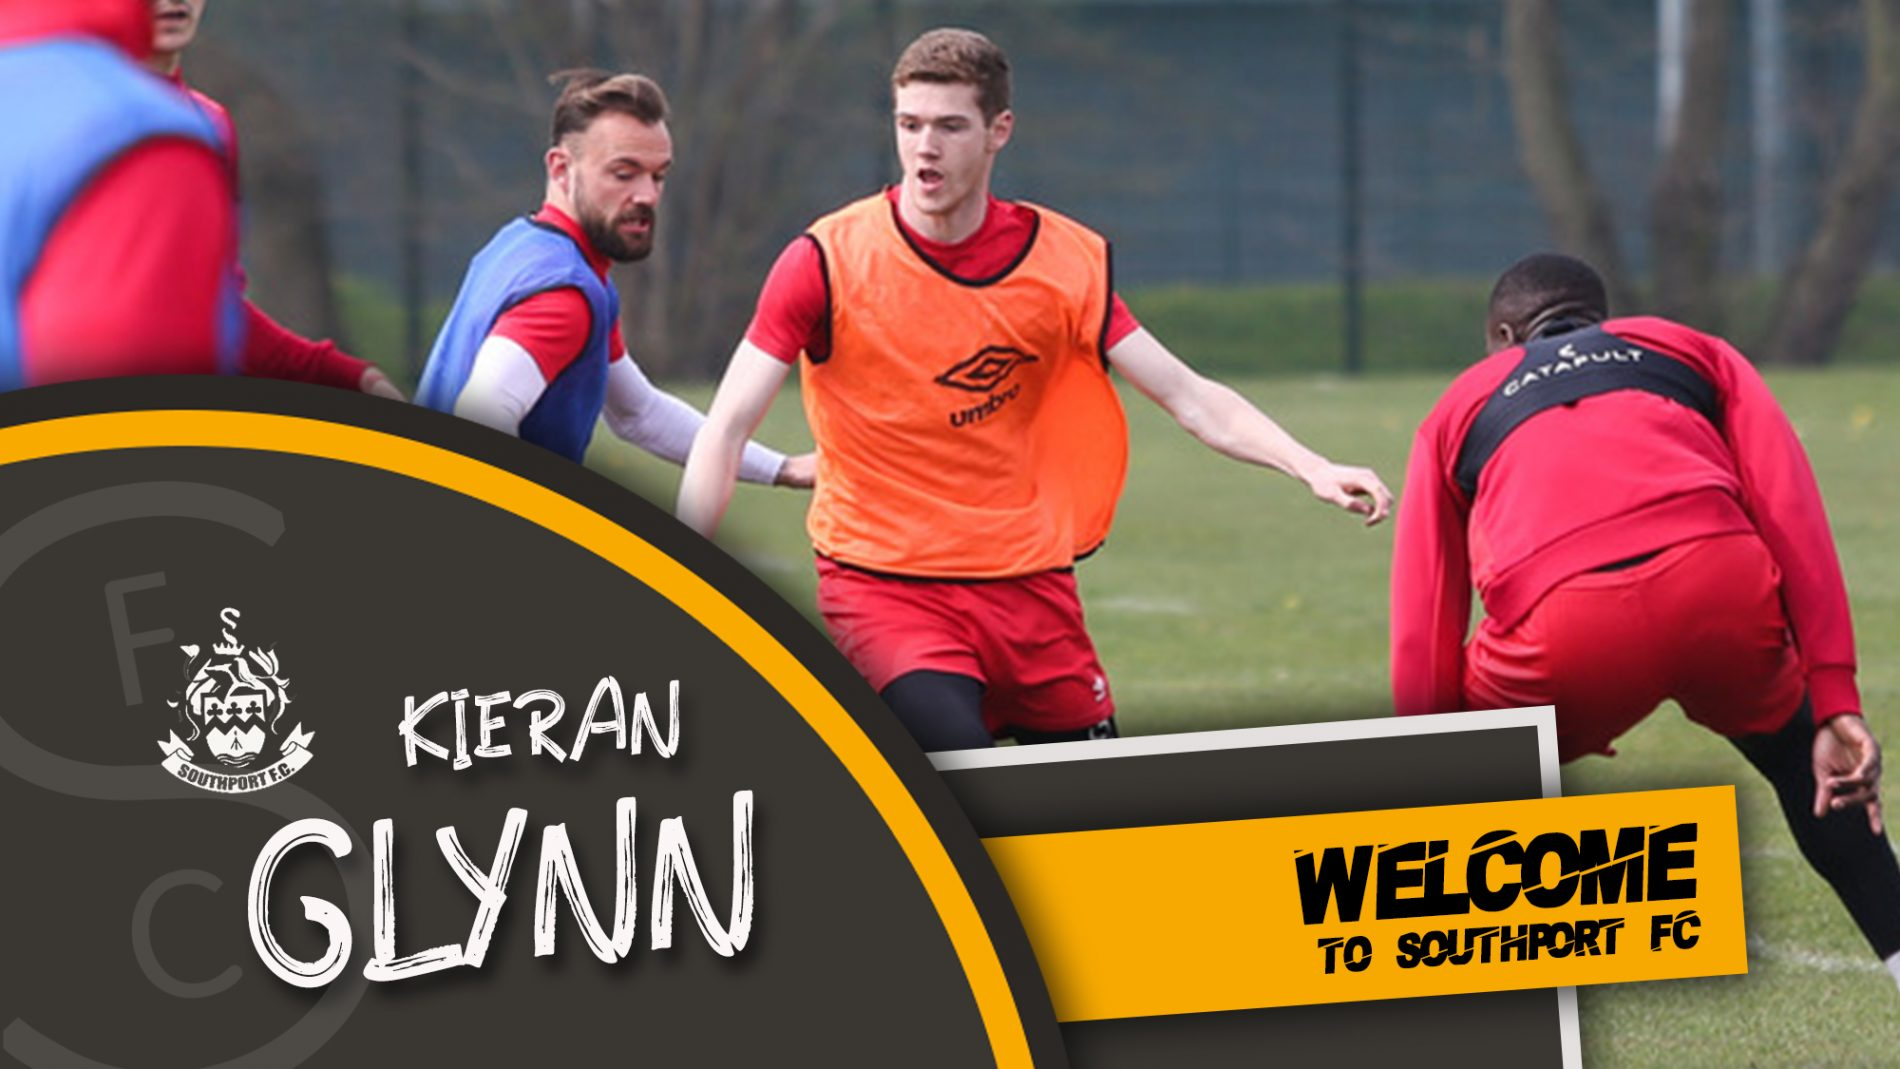 SIGNING | Glynn Joins The Port!